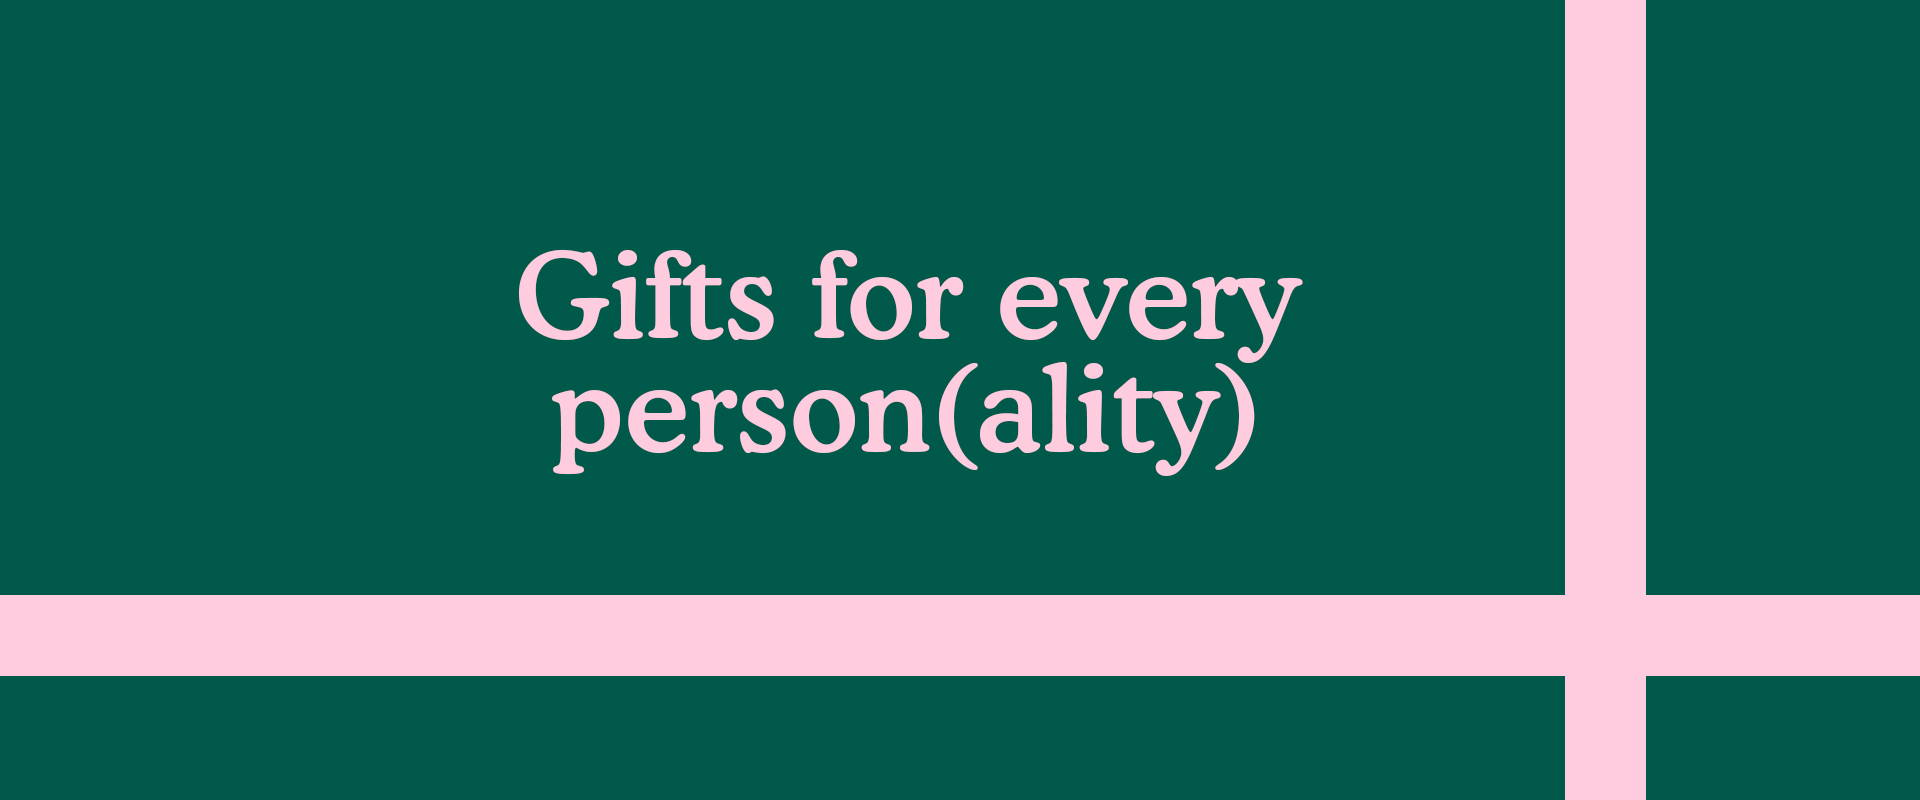 Gifts for every person(ality)